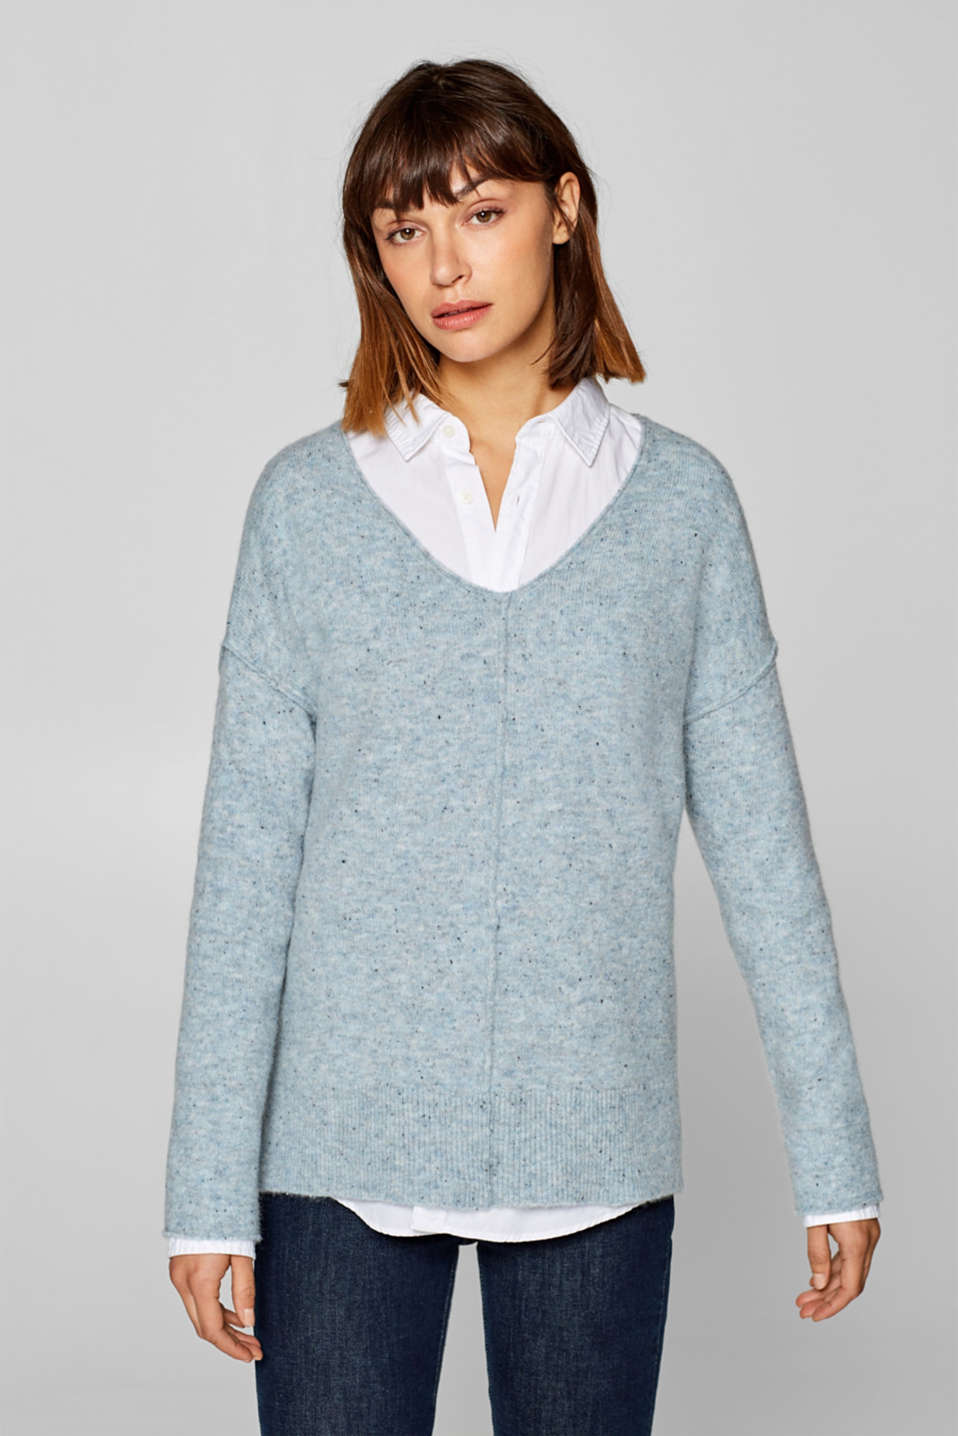 Esprit - Made of blended wool: Melange jumper with decorative stitching